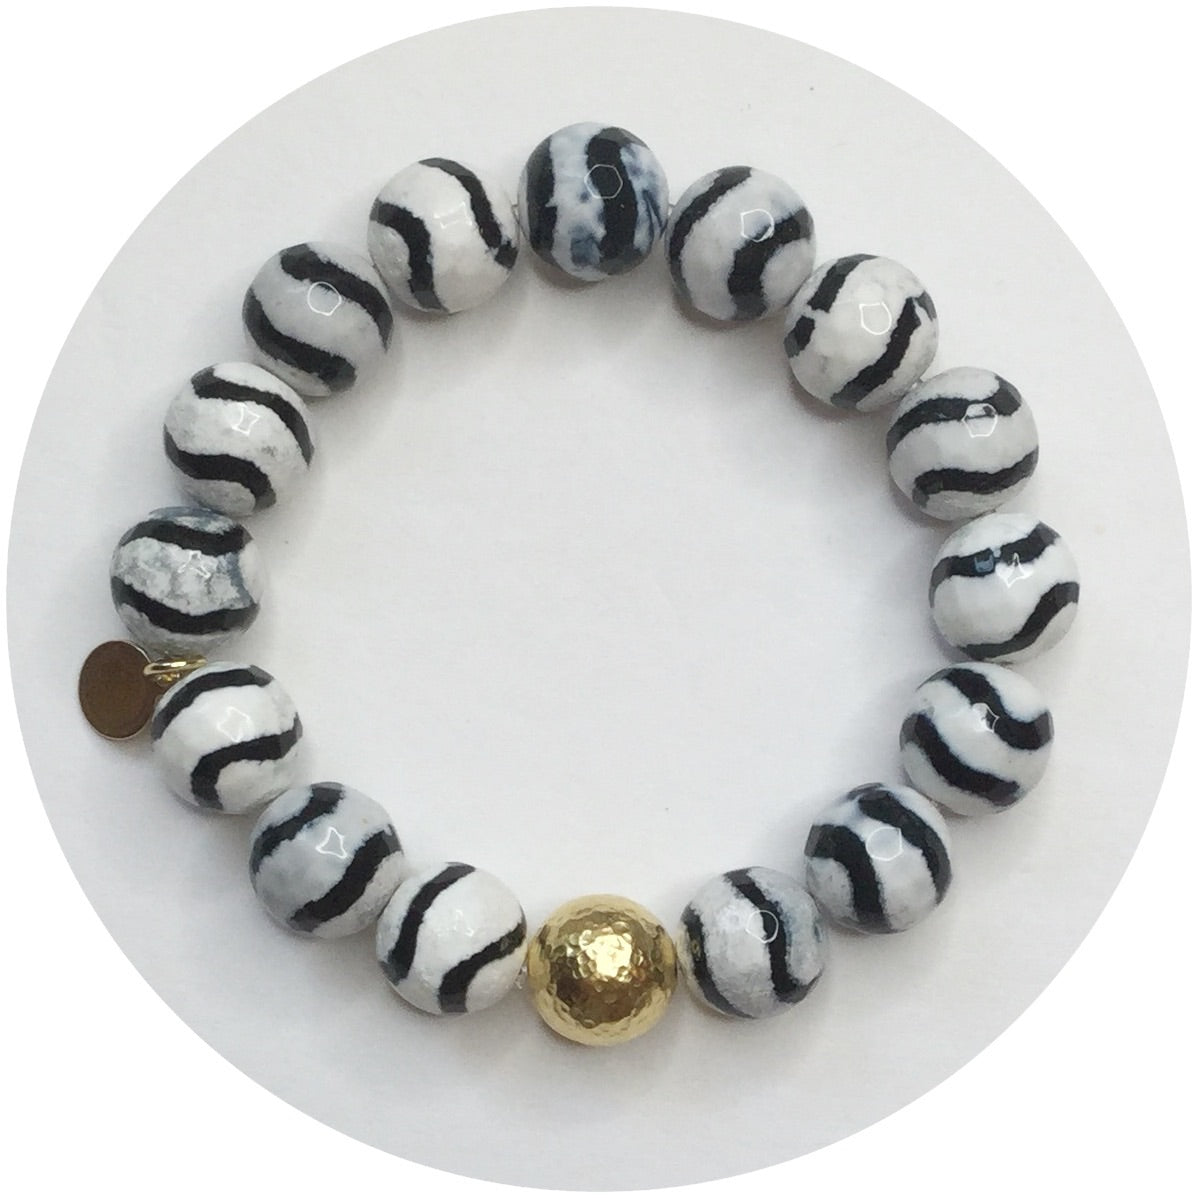 Tibetan Black Wave Agate with Gold Hammered Accent - Oriana Lamarca LLC